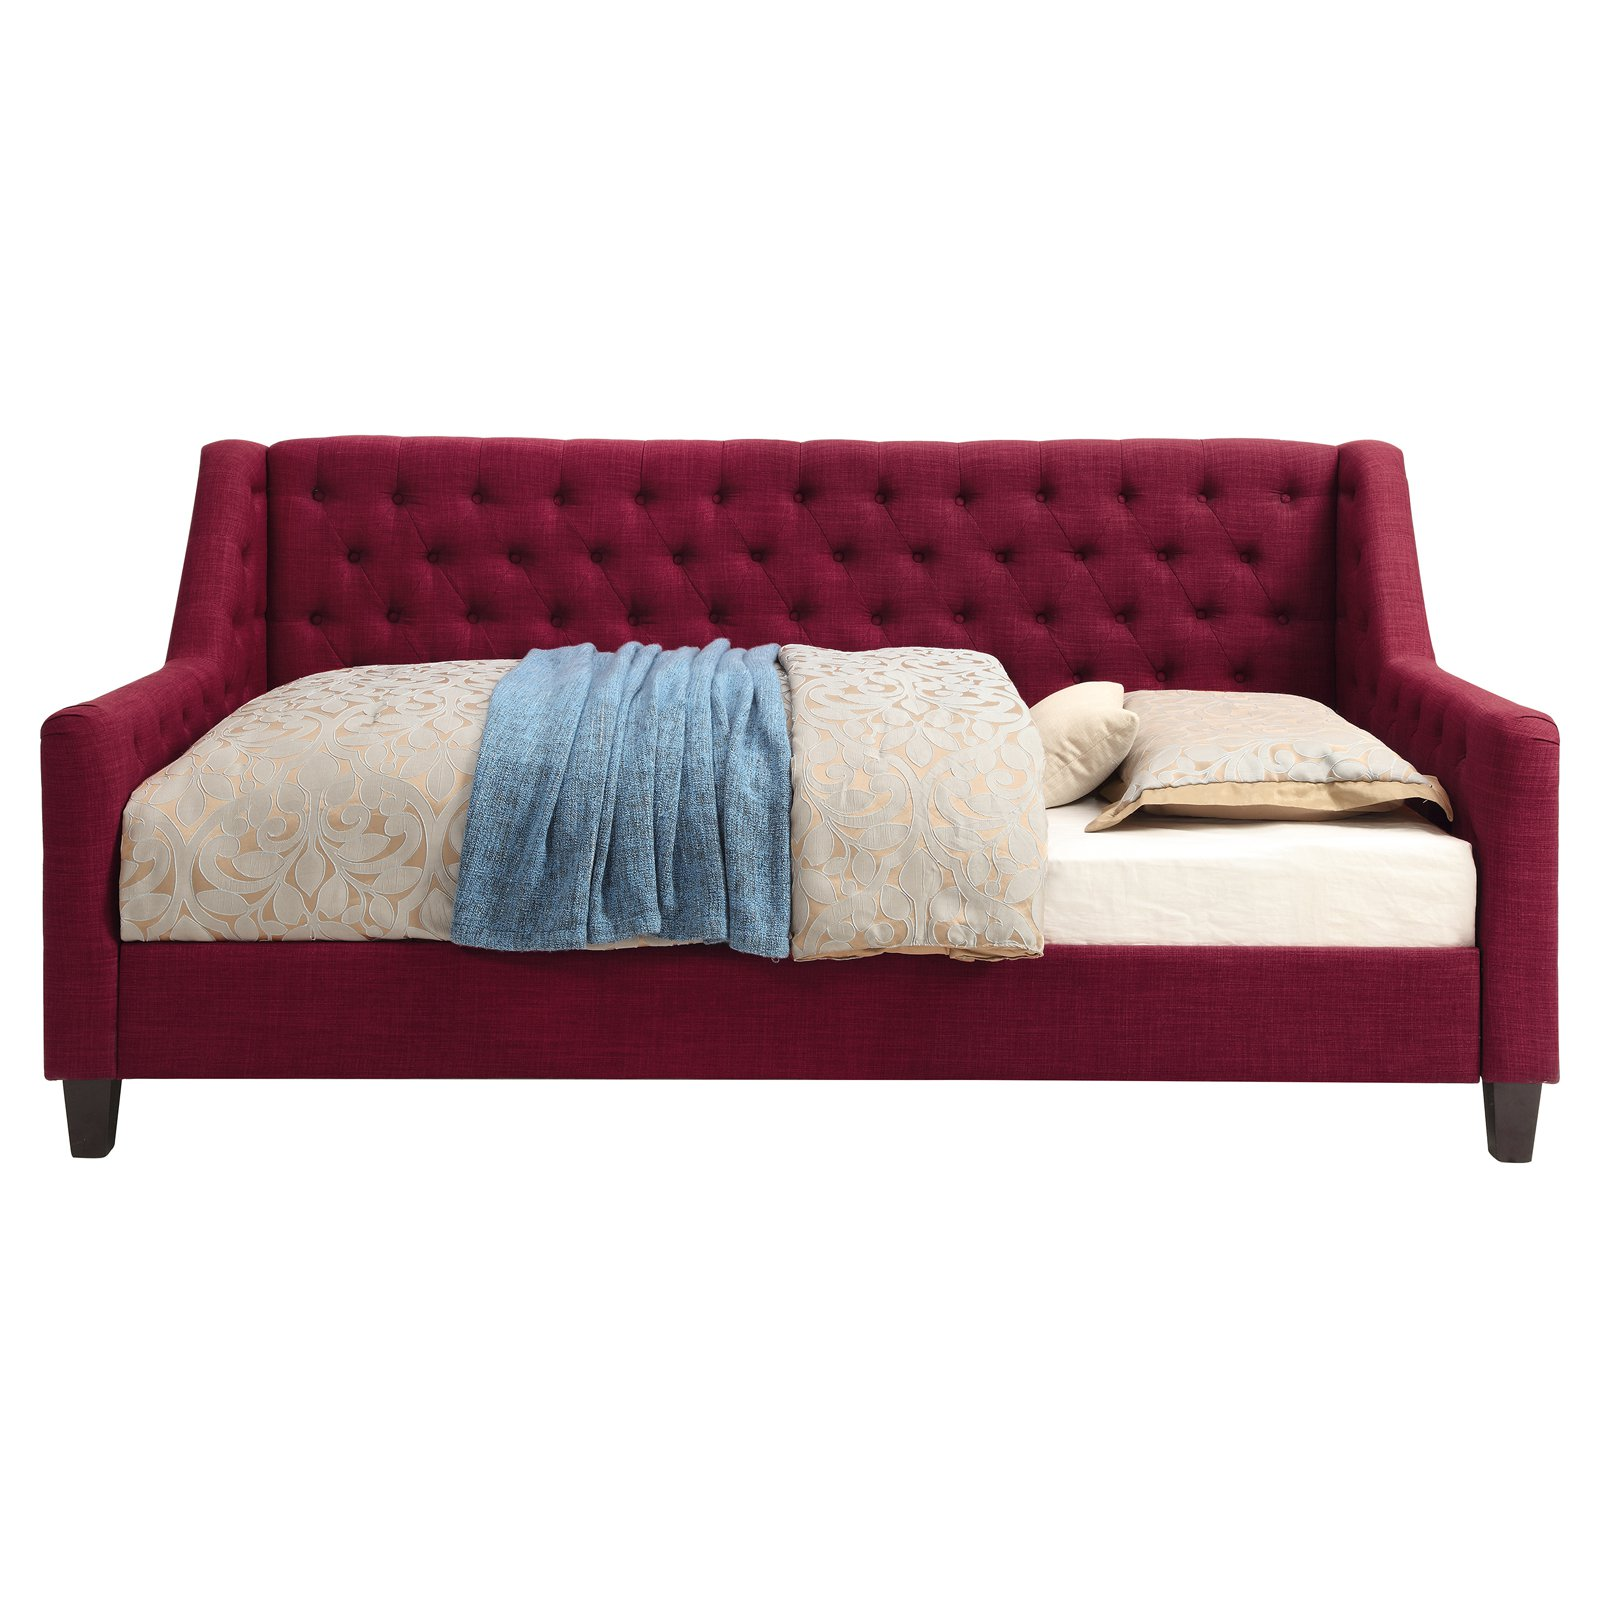 Rosevera Milagros Twin Size Tufted Daybed